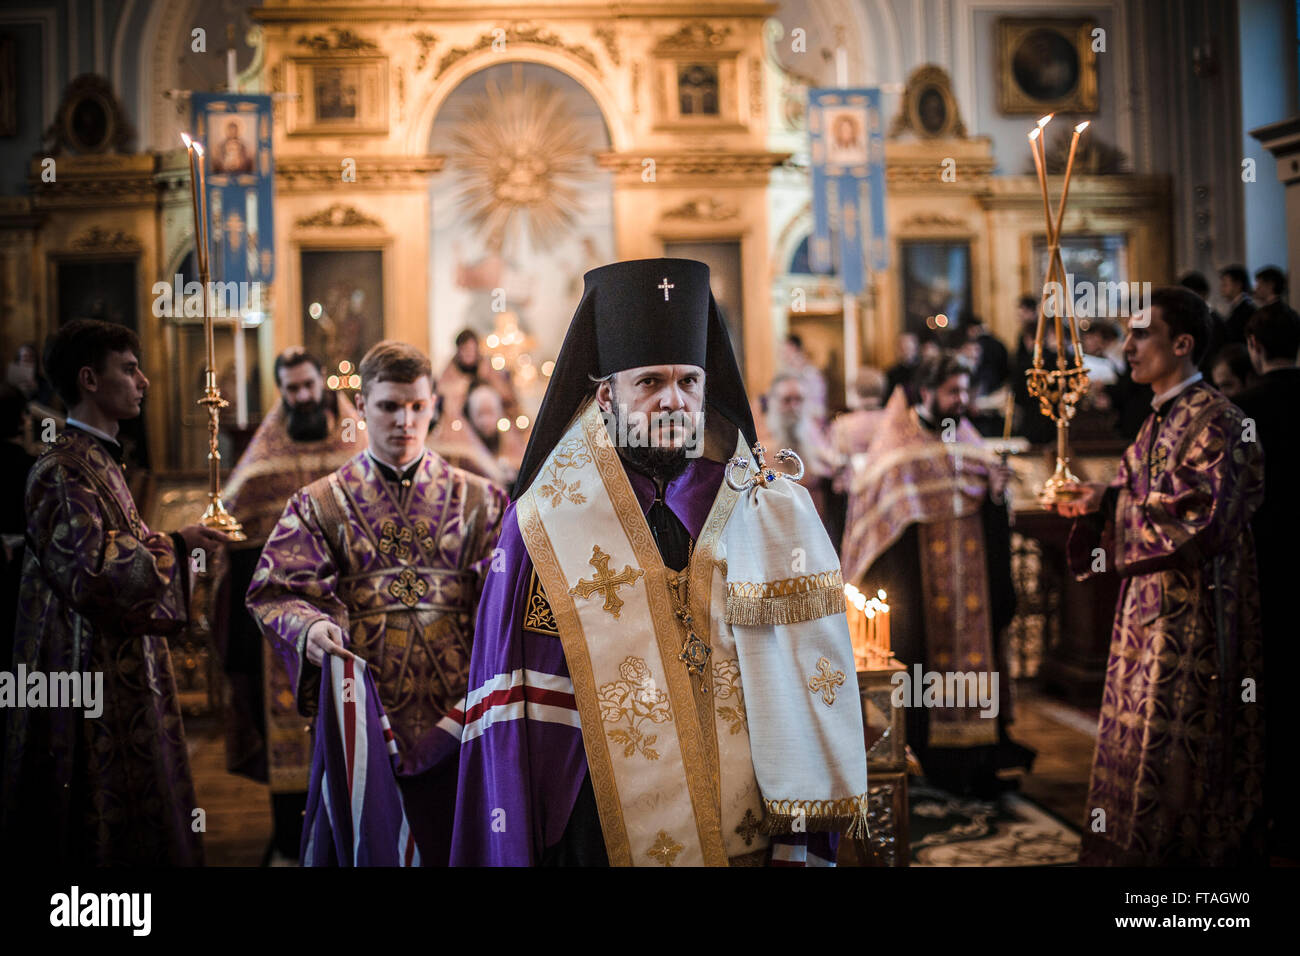 A Russian Orthodox priest during Holy Week services at the Theological Academy March 25, 2016 in Saint Petersburg, - Stock Image